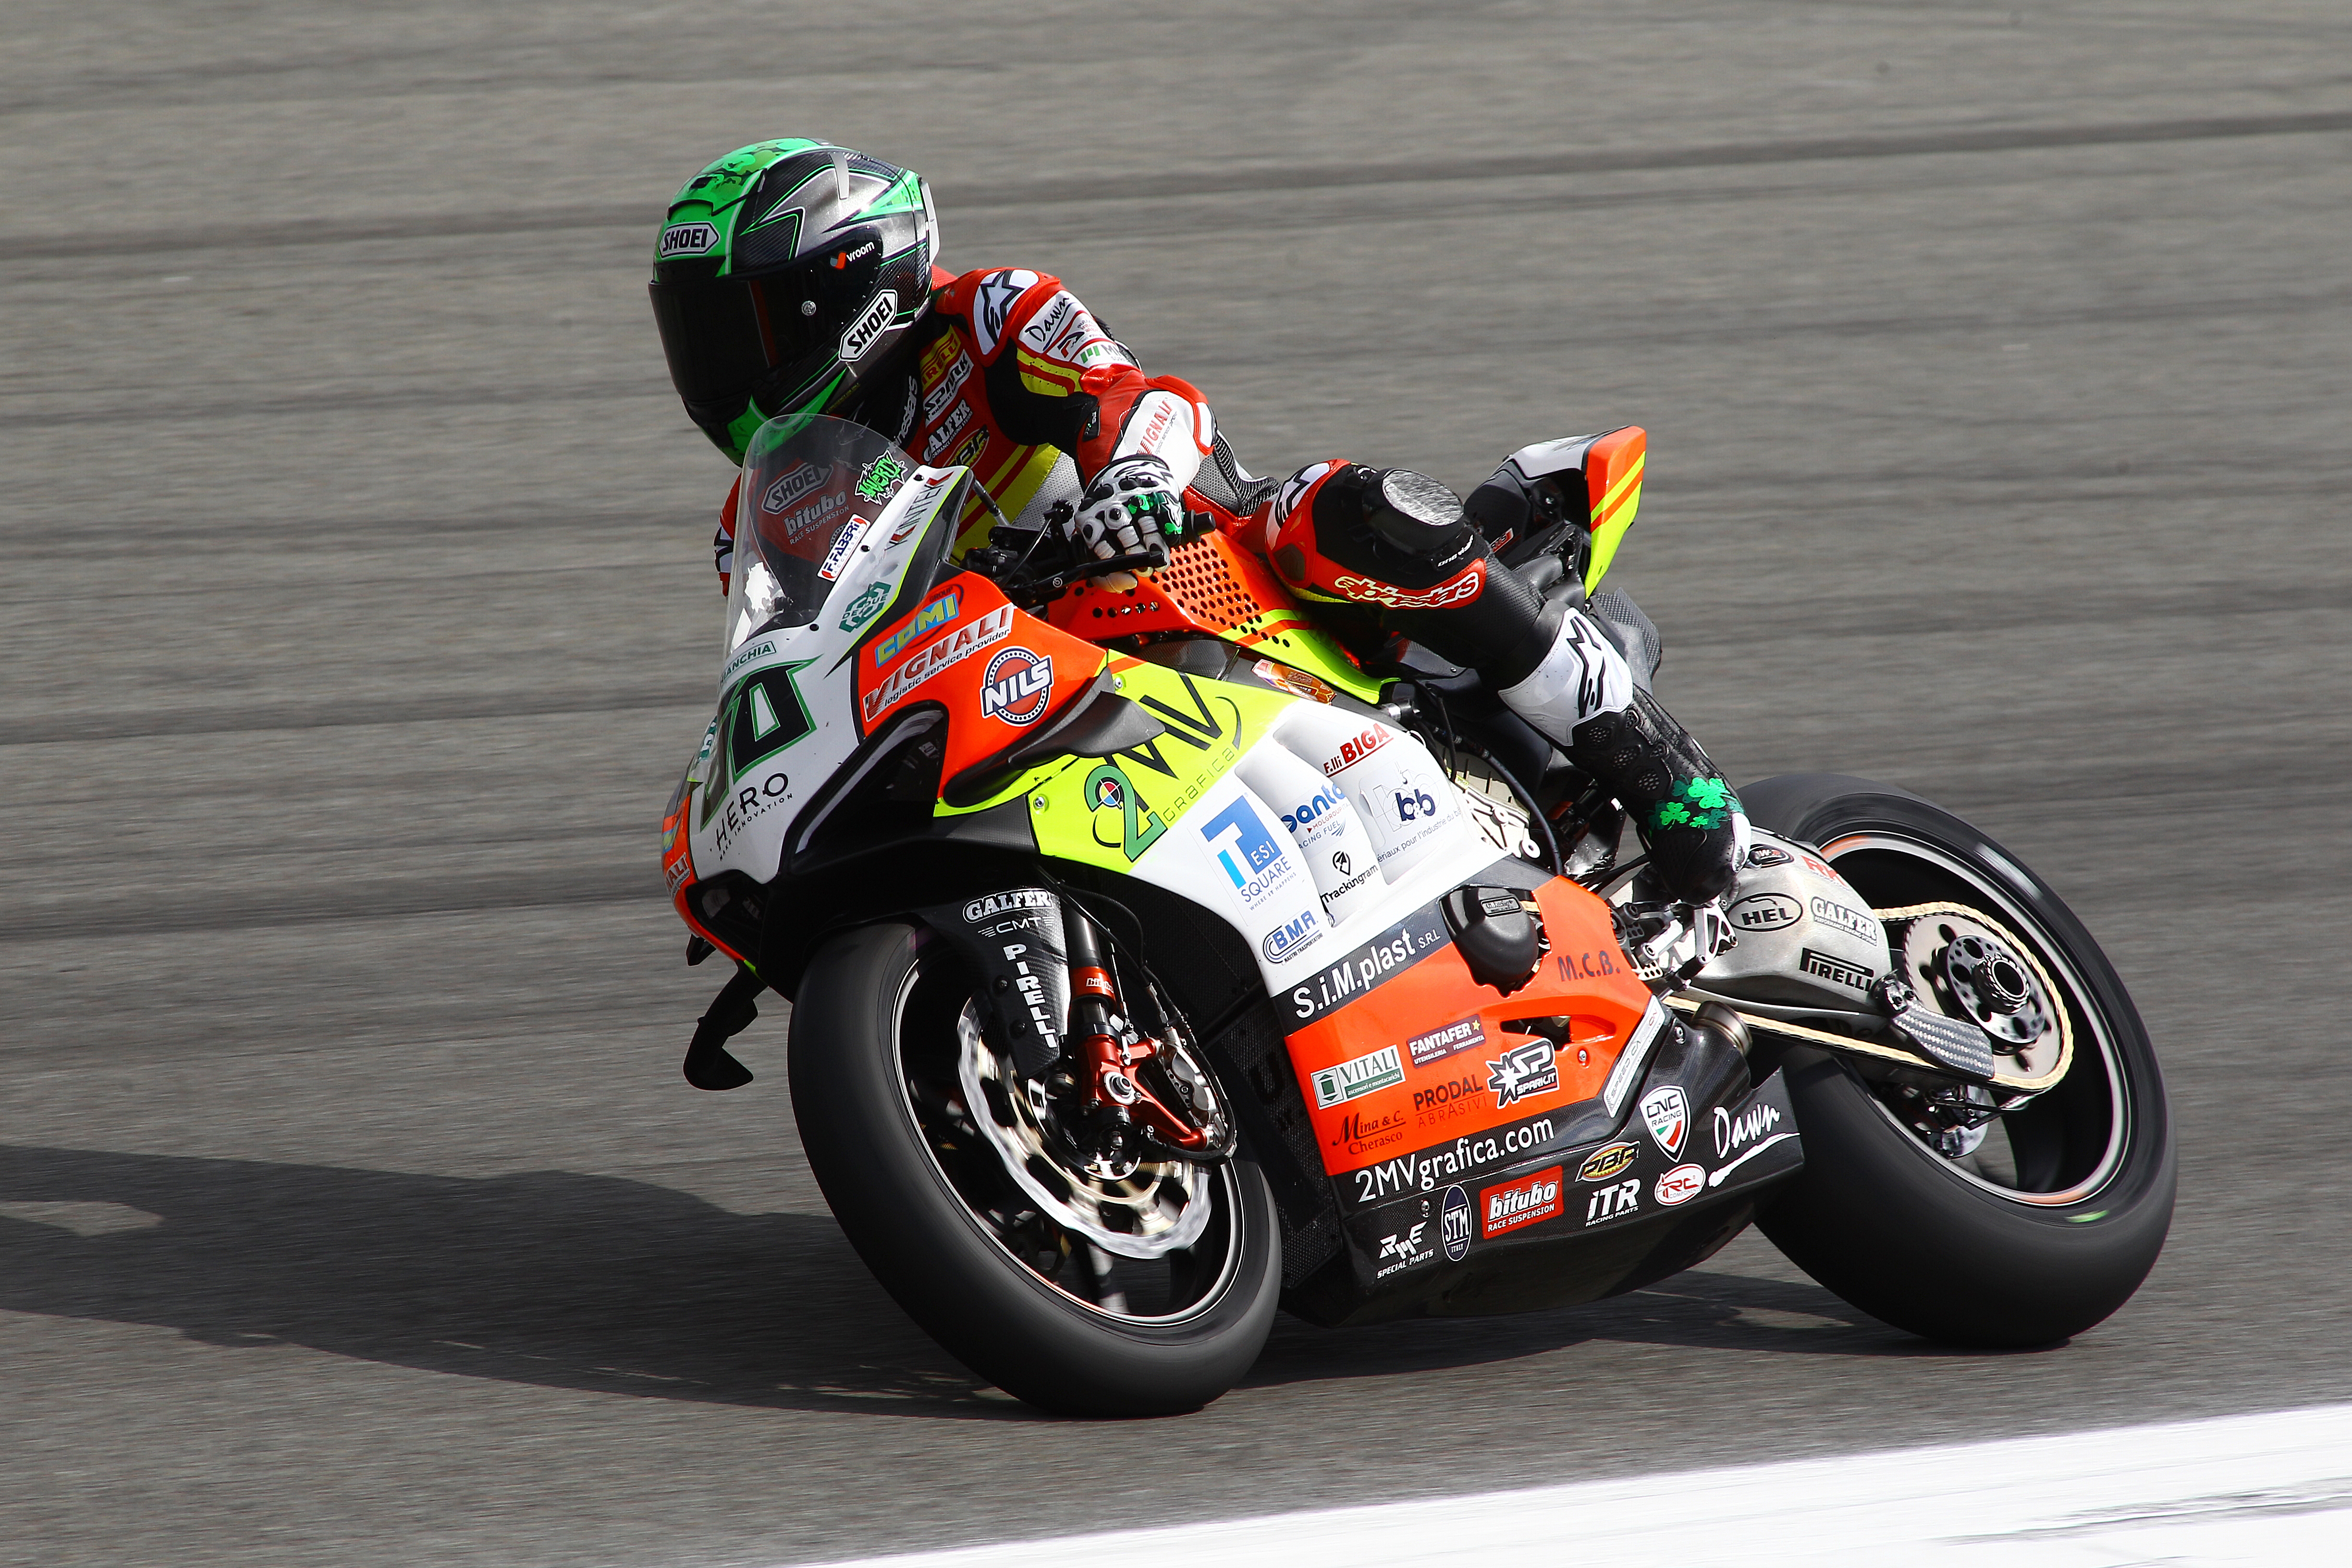 QUARTO ROUND WORLD SBK- ASSEN